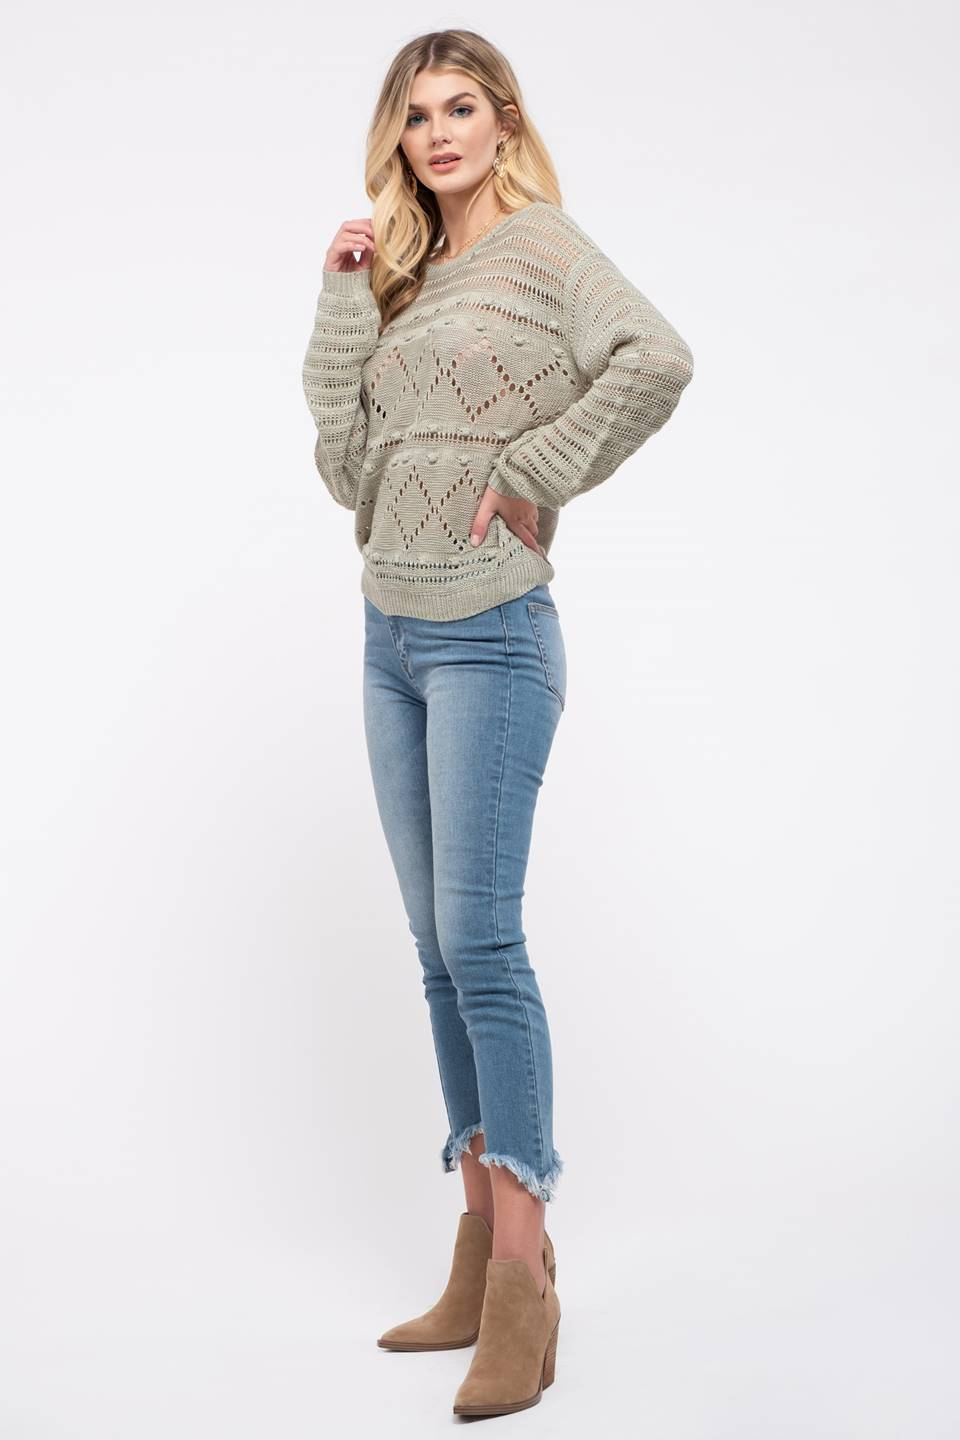 Crochet Open-Knit Sweater